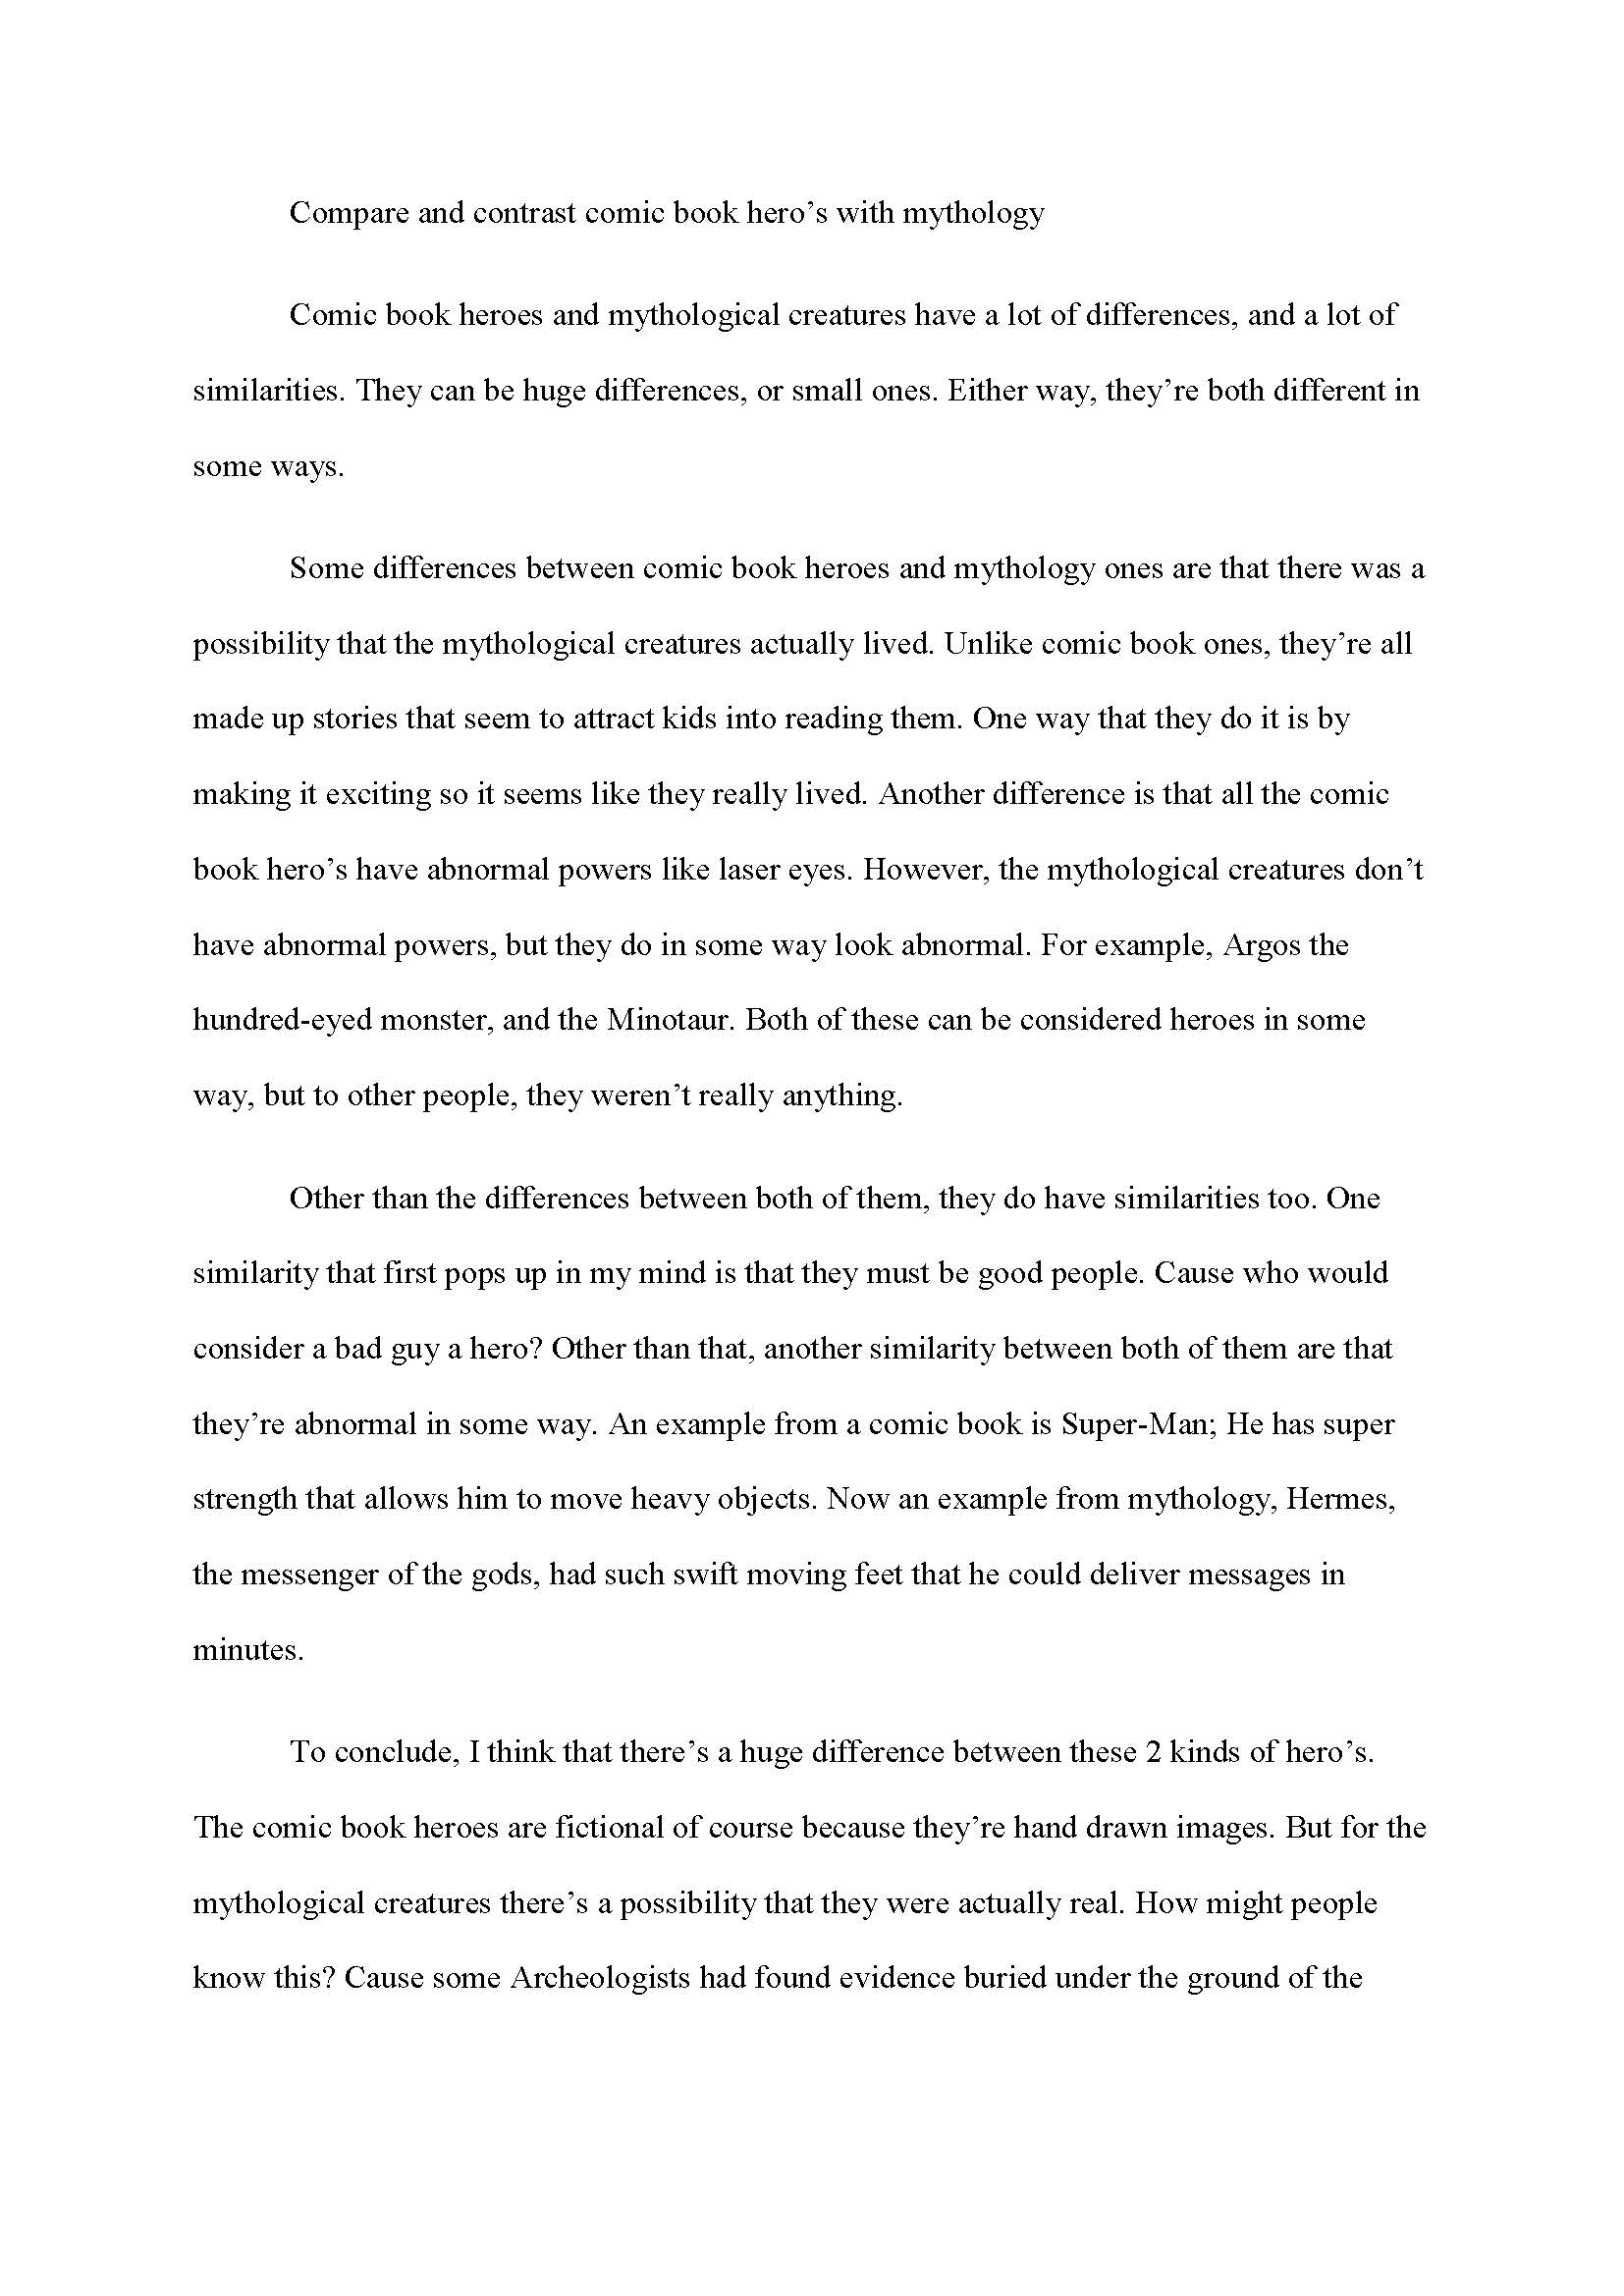 004 Conclusion For Compare And Contrast Essay Example Awesome How To Write A Paragraph Examples Full